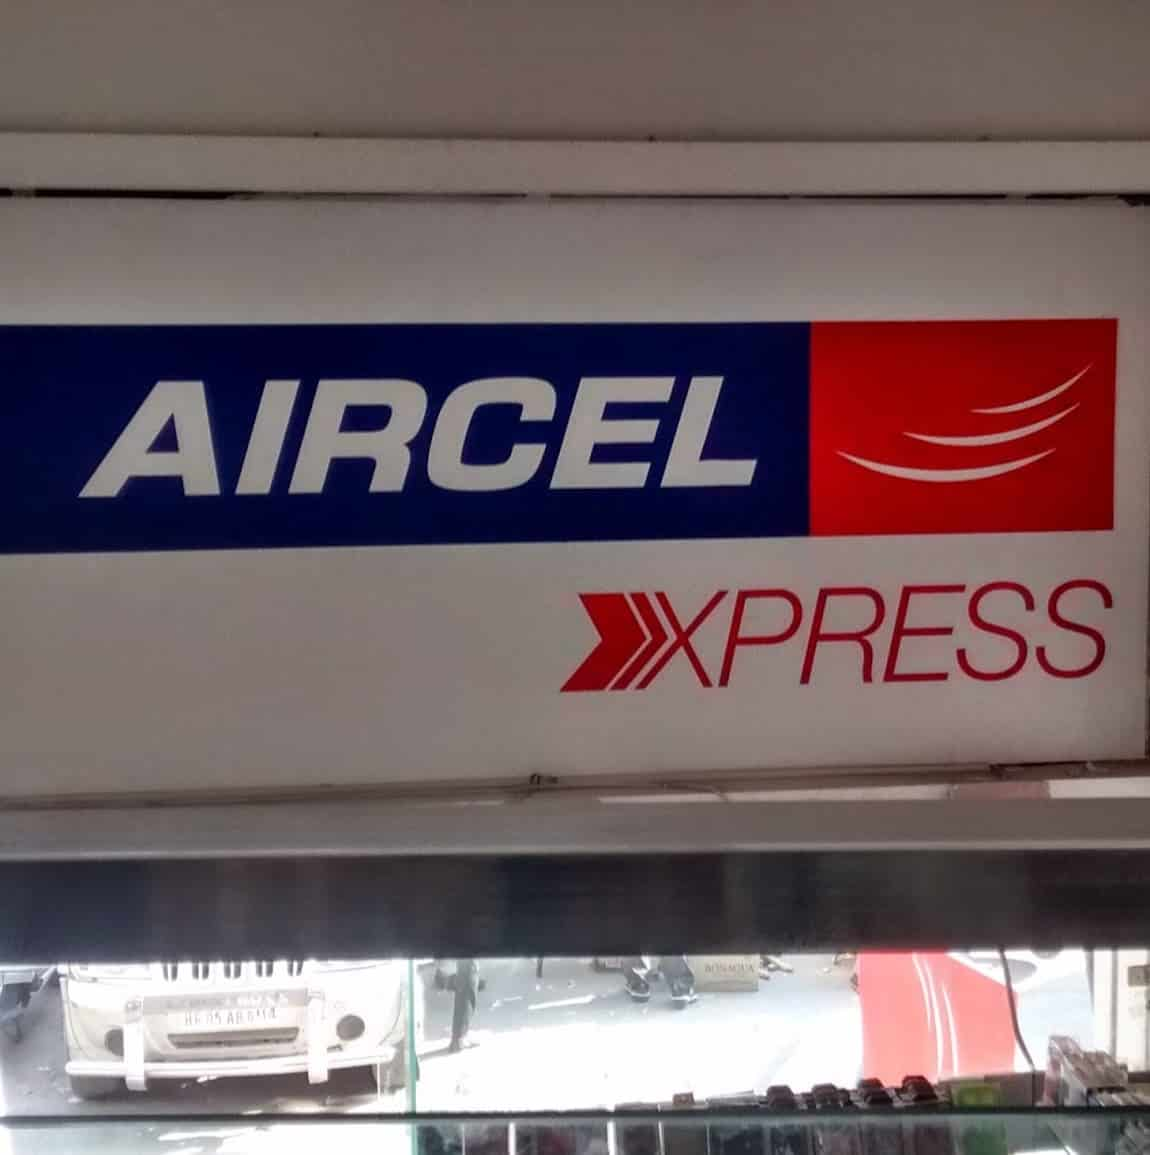 Internet Outage Strikes For Comcast Users Across Us: Aircel Launches 'My First Internet' ServiceVoice&Data